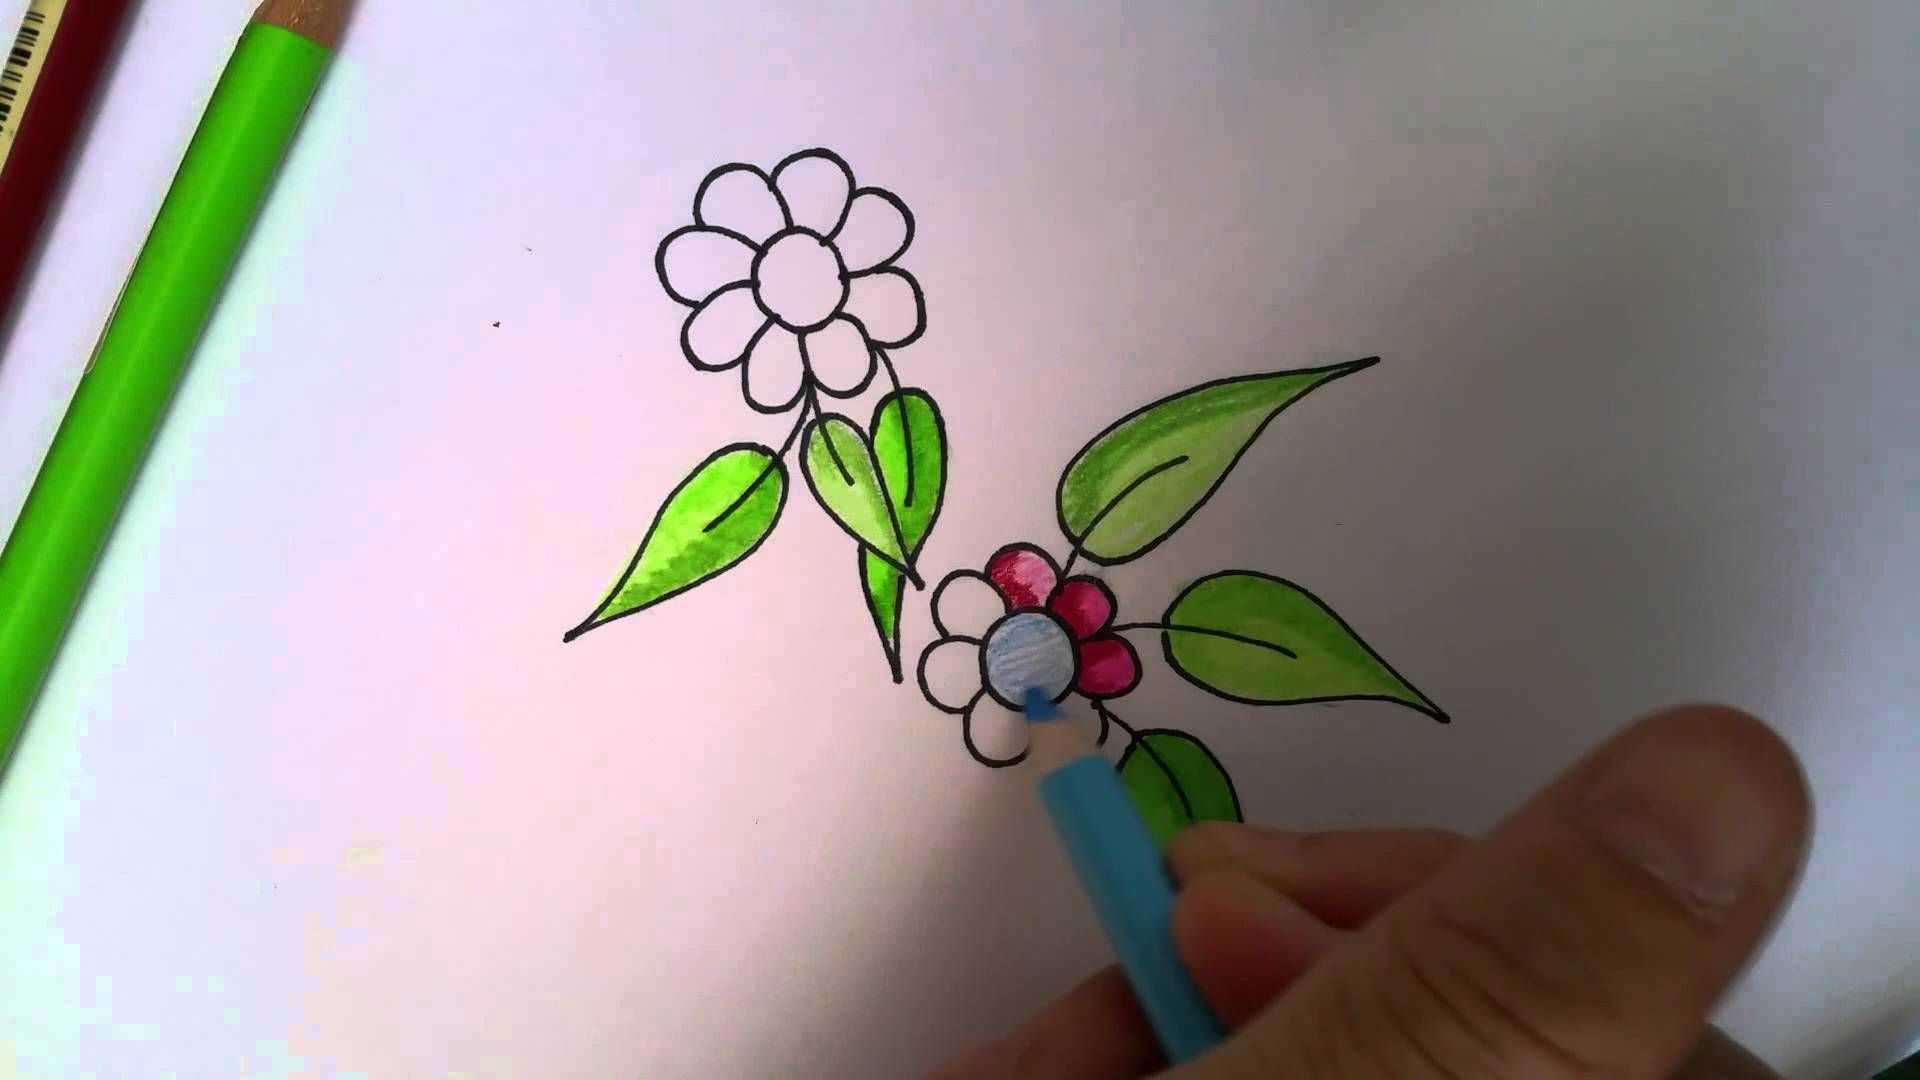 S blend coloring pages - Find This Pin And More On Coloring Tips Tricks By Nativedivah